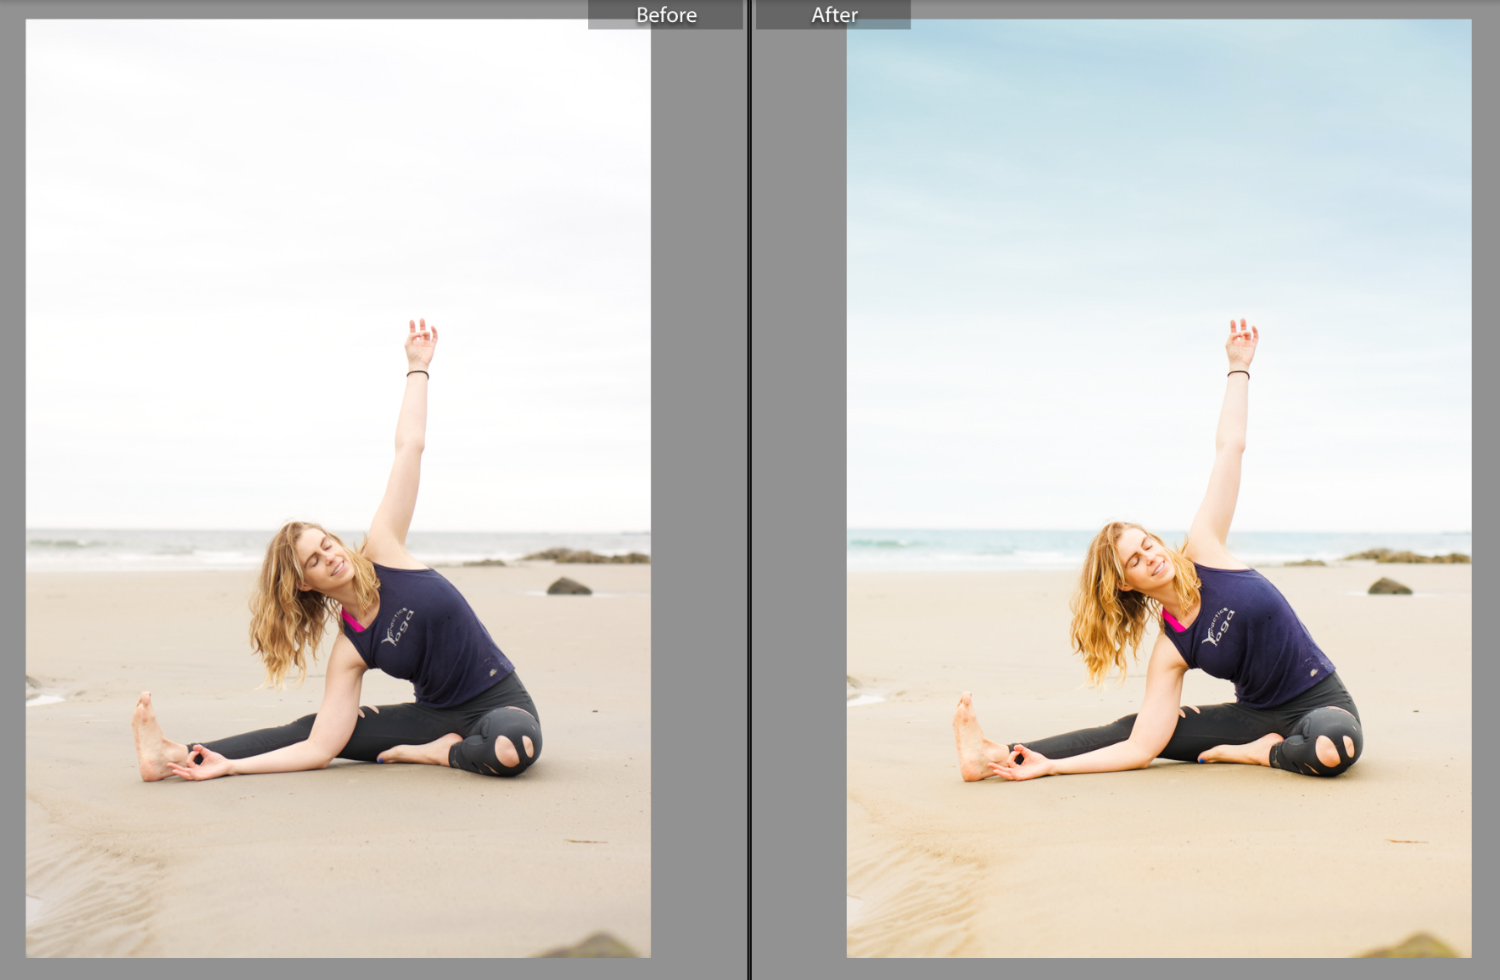 An early-morning beach shoot on a rainy day was intended to advertise a retreat in Costa Rica. Had to get creative in the editing process!